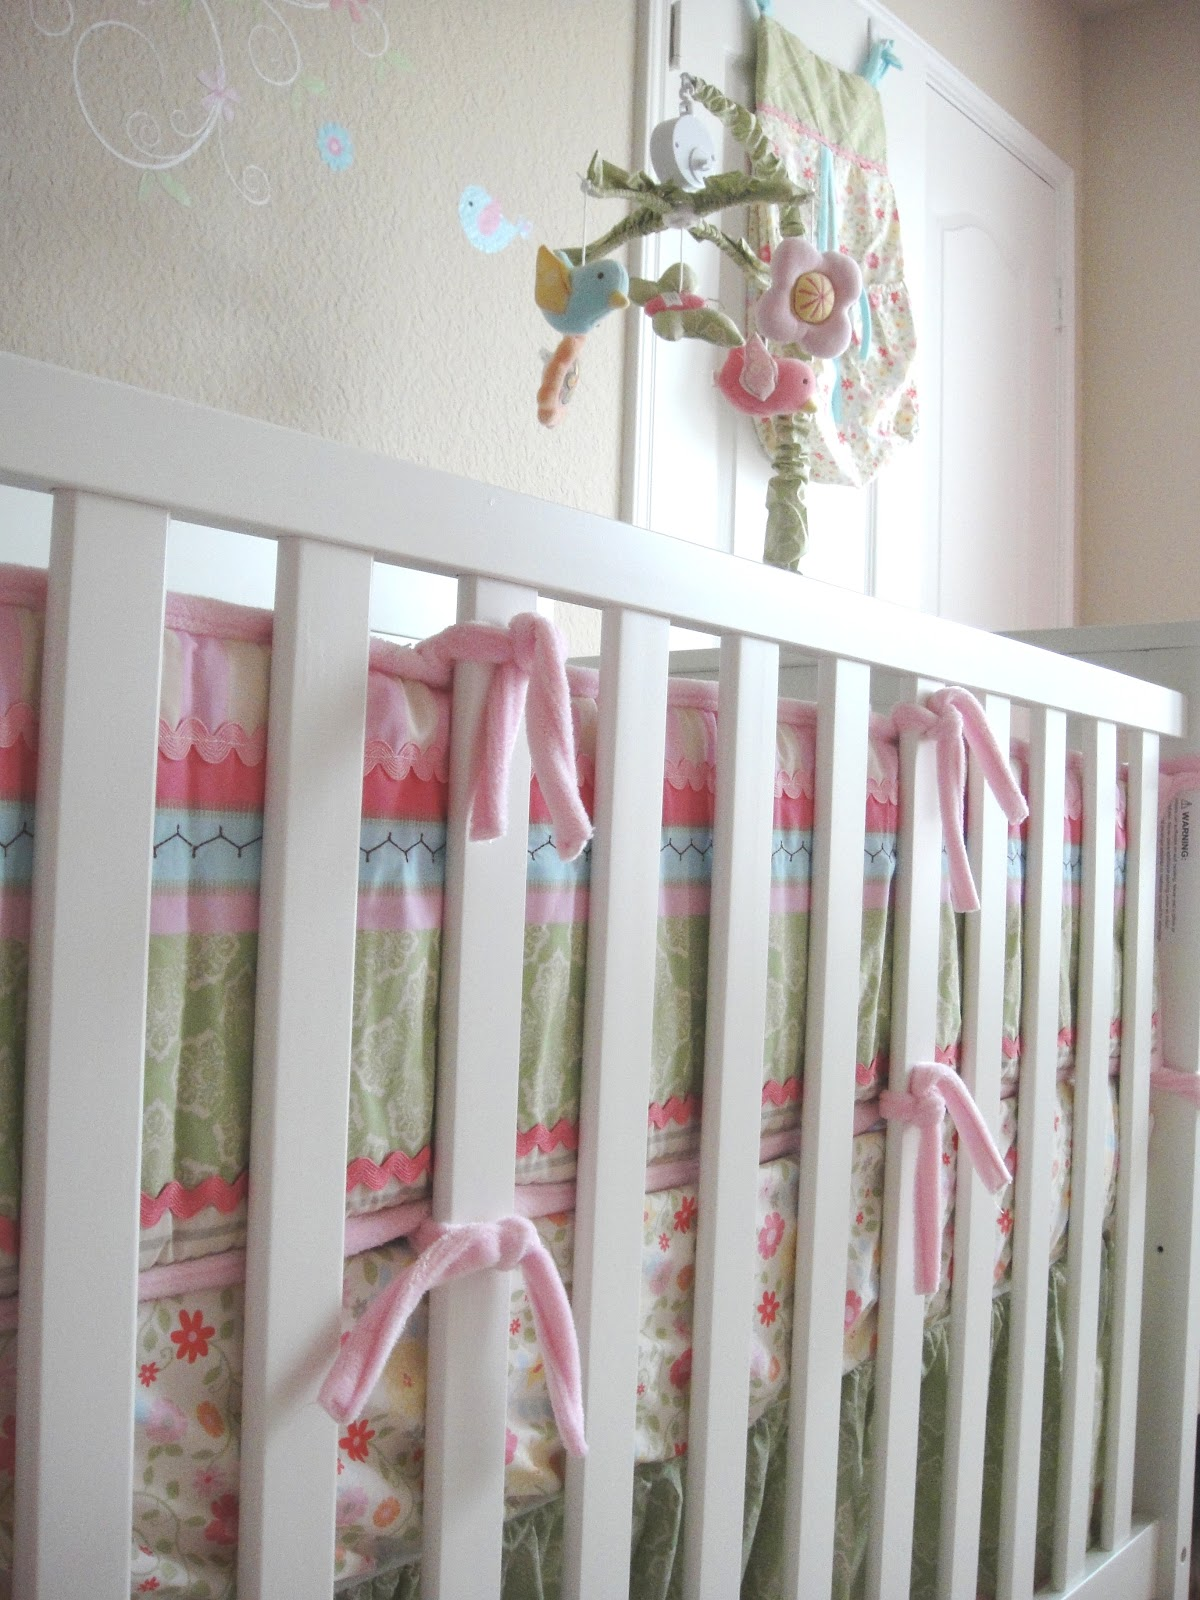 Inspirational Don ut you just love the colors The blues pinks and greens blend so well together It us dainty sweet and pretty Perfect for a baby girl